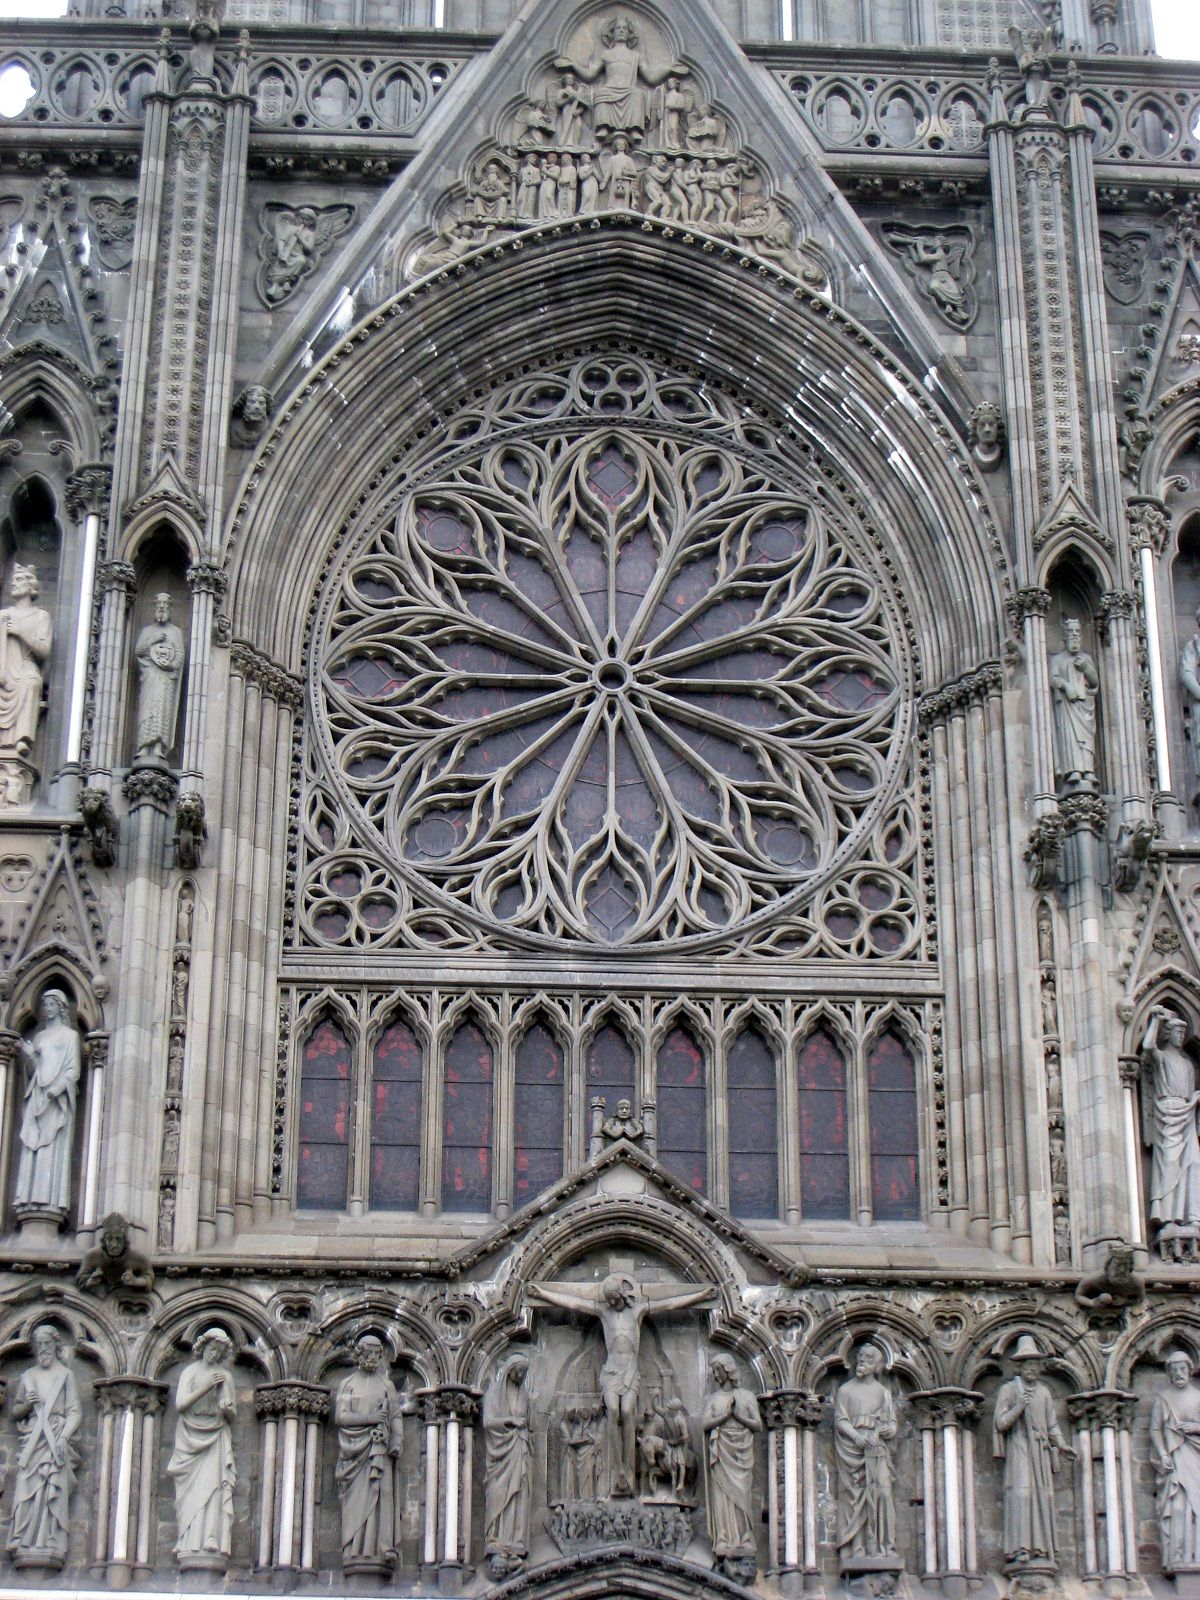 nidaros cathedral trondheim norway rose window outside view iglesias mezquitas monumentos. Black Bedroom Furniture Sets. Home Design Ideas